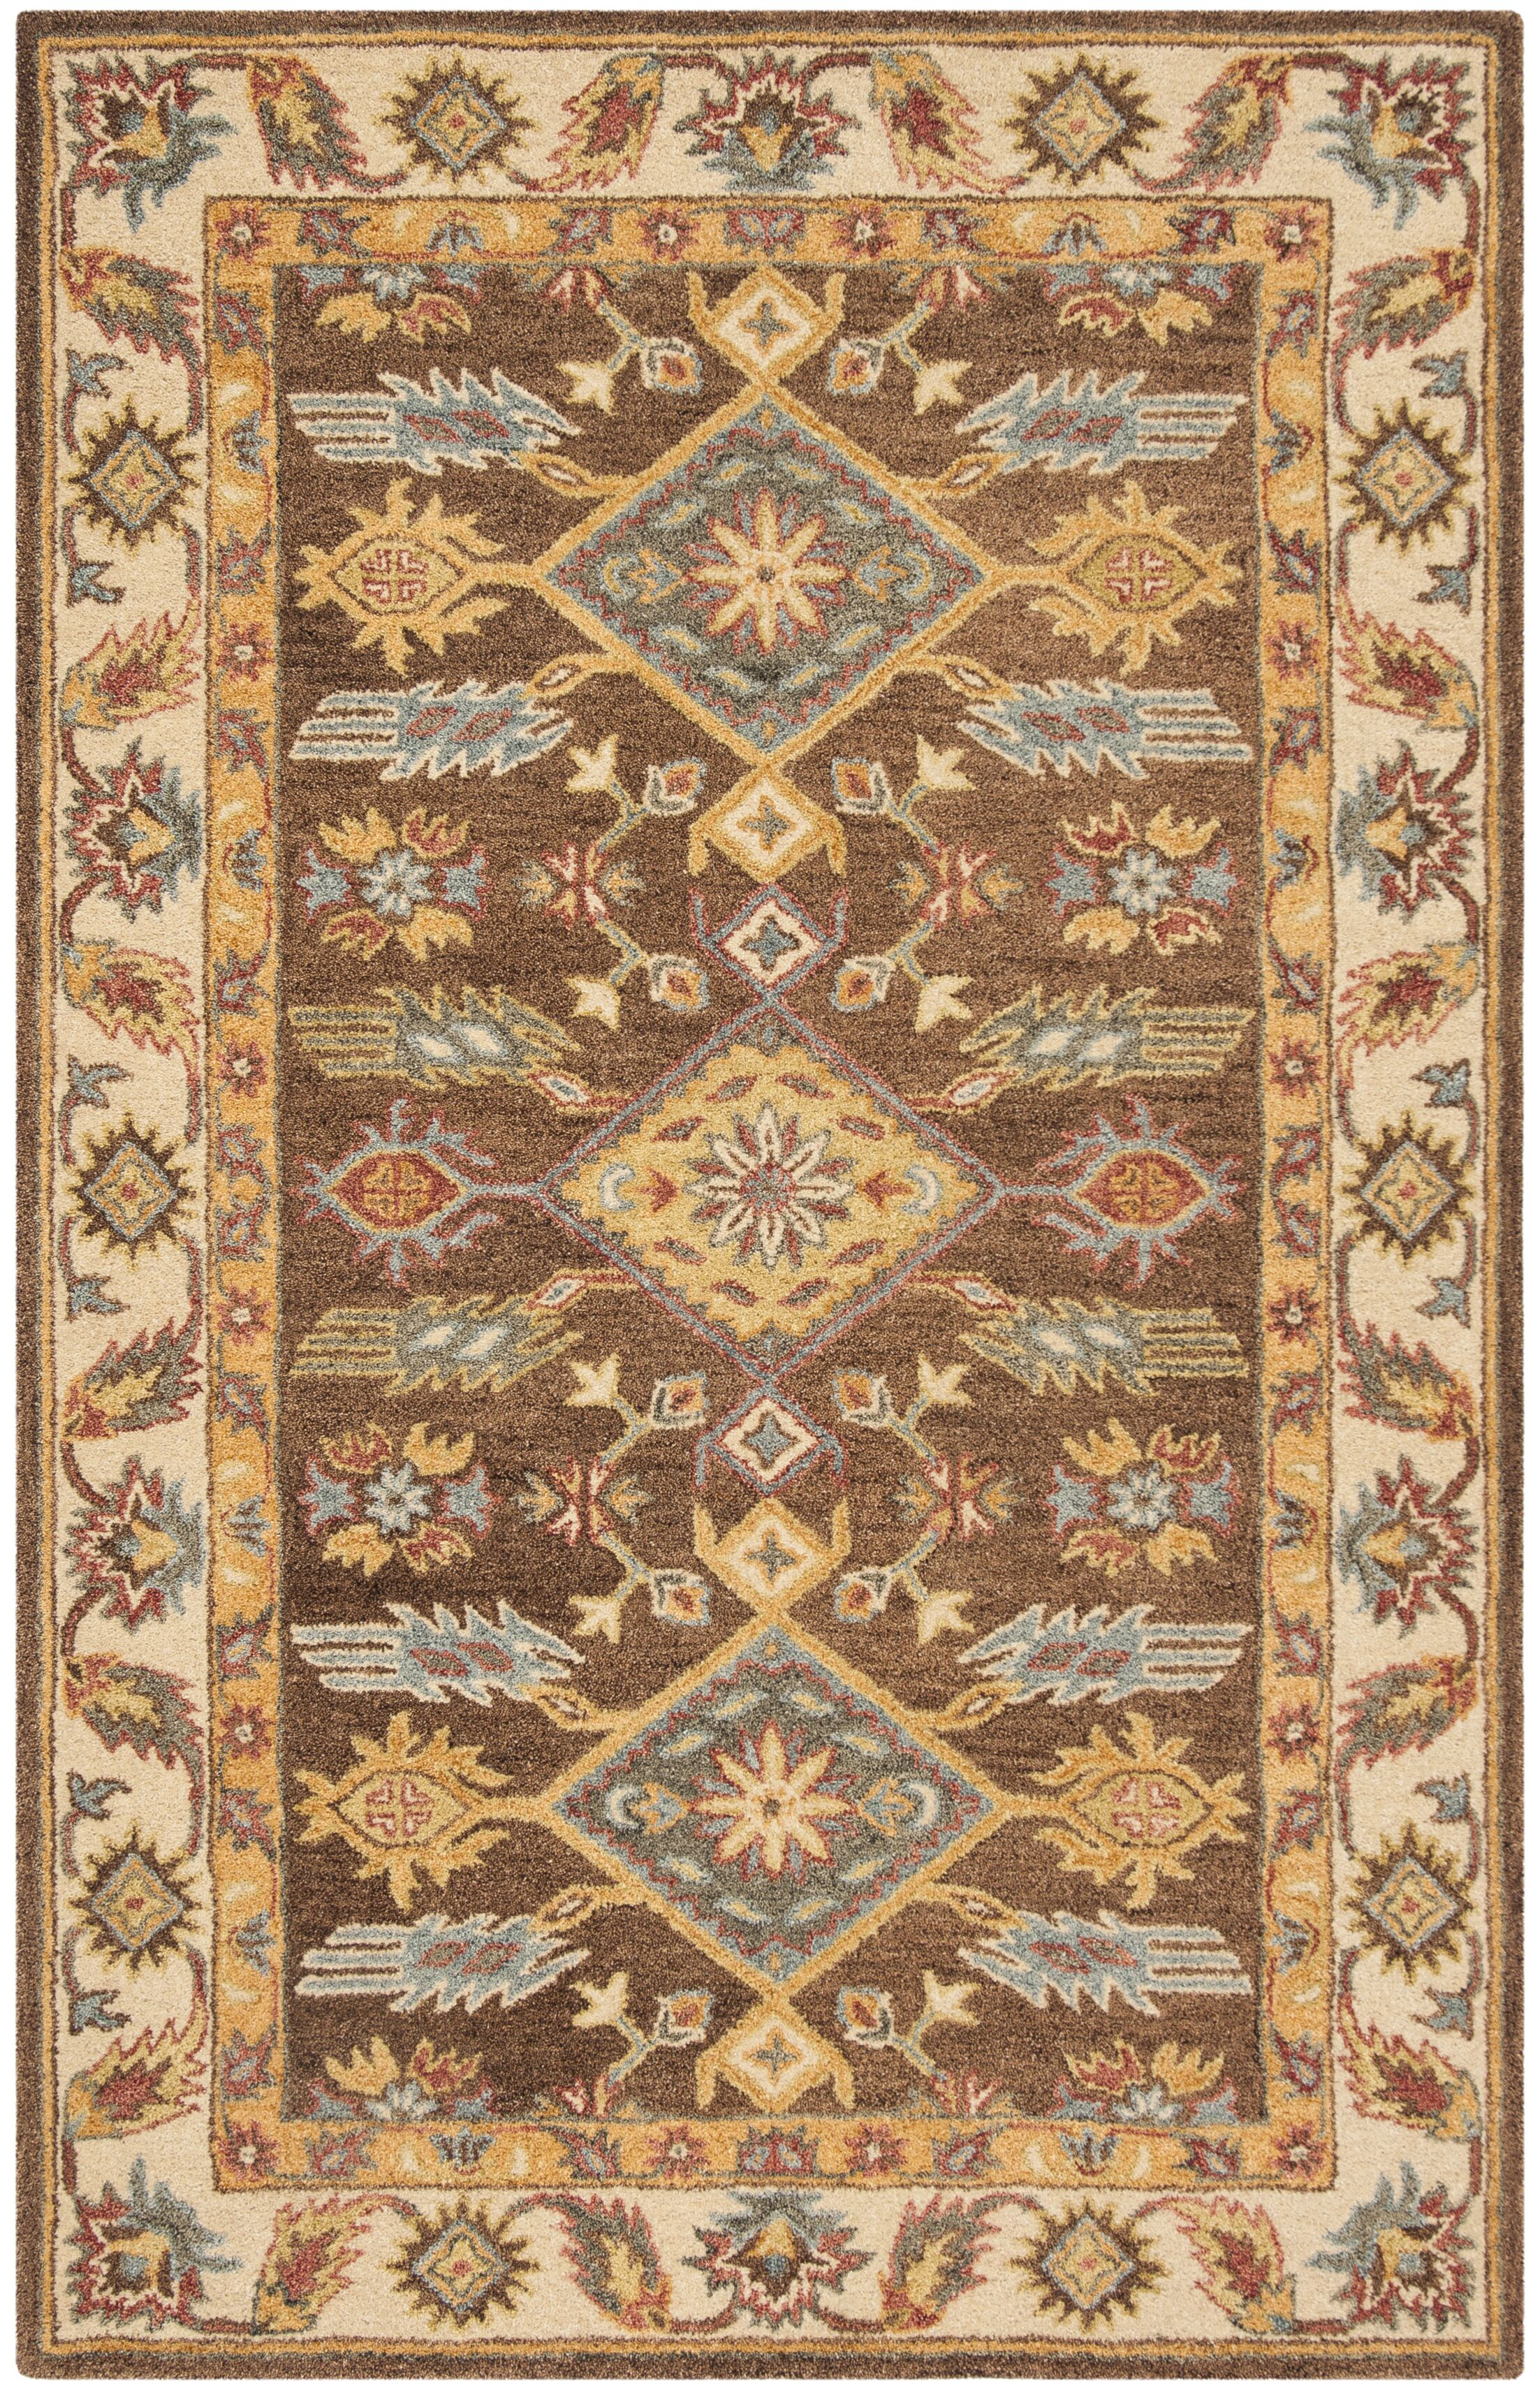 Clymer Antiquity Hand-Tufted Wool/Cotton Brown/Ivory Area Rug Rug Size: Rectangle 3' x 5'